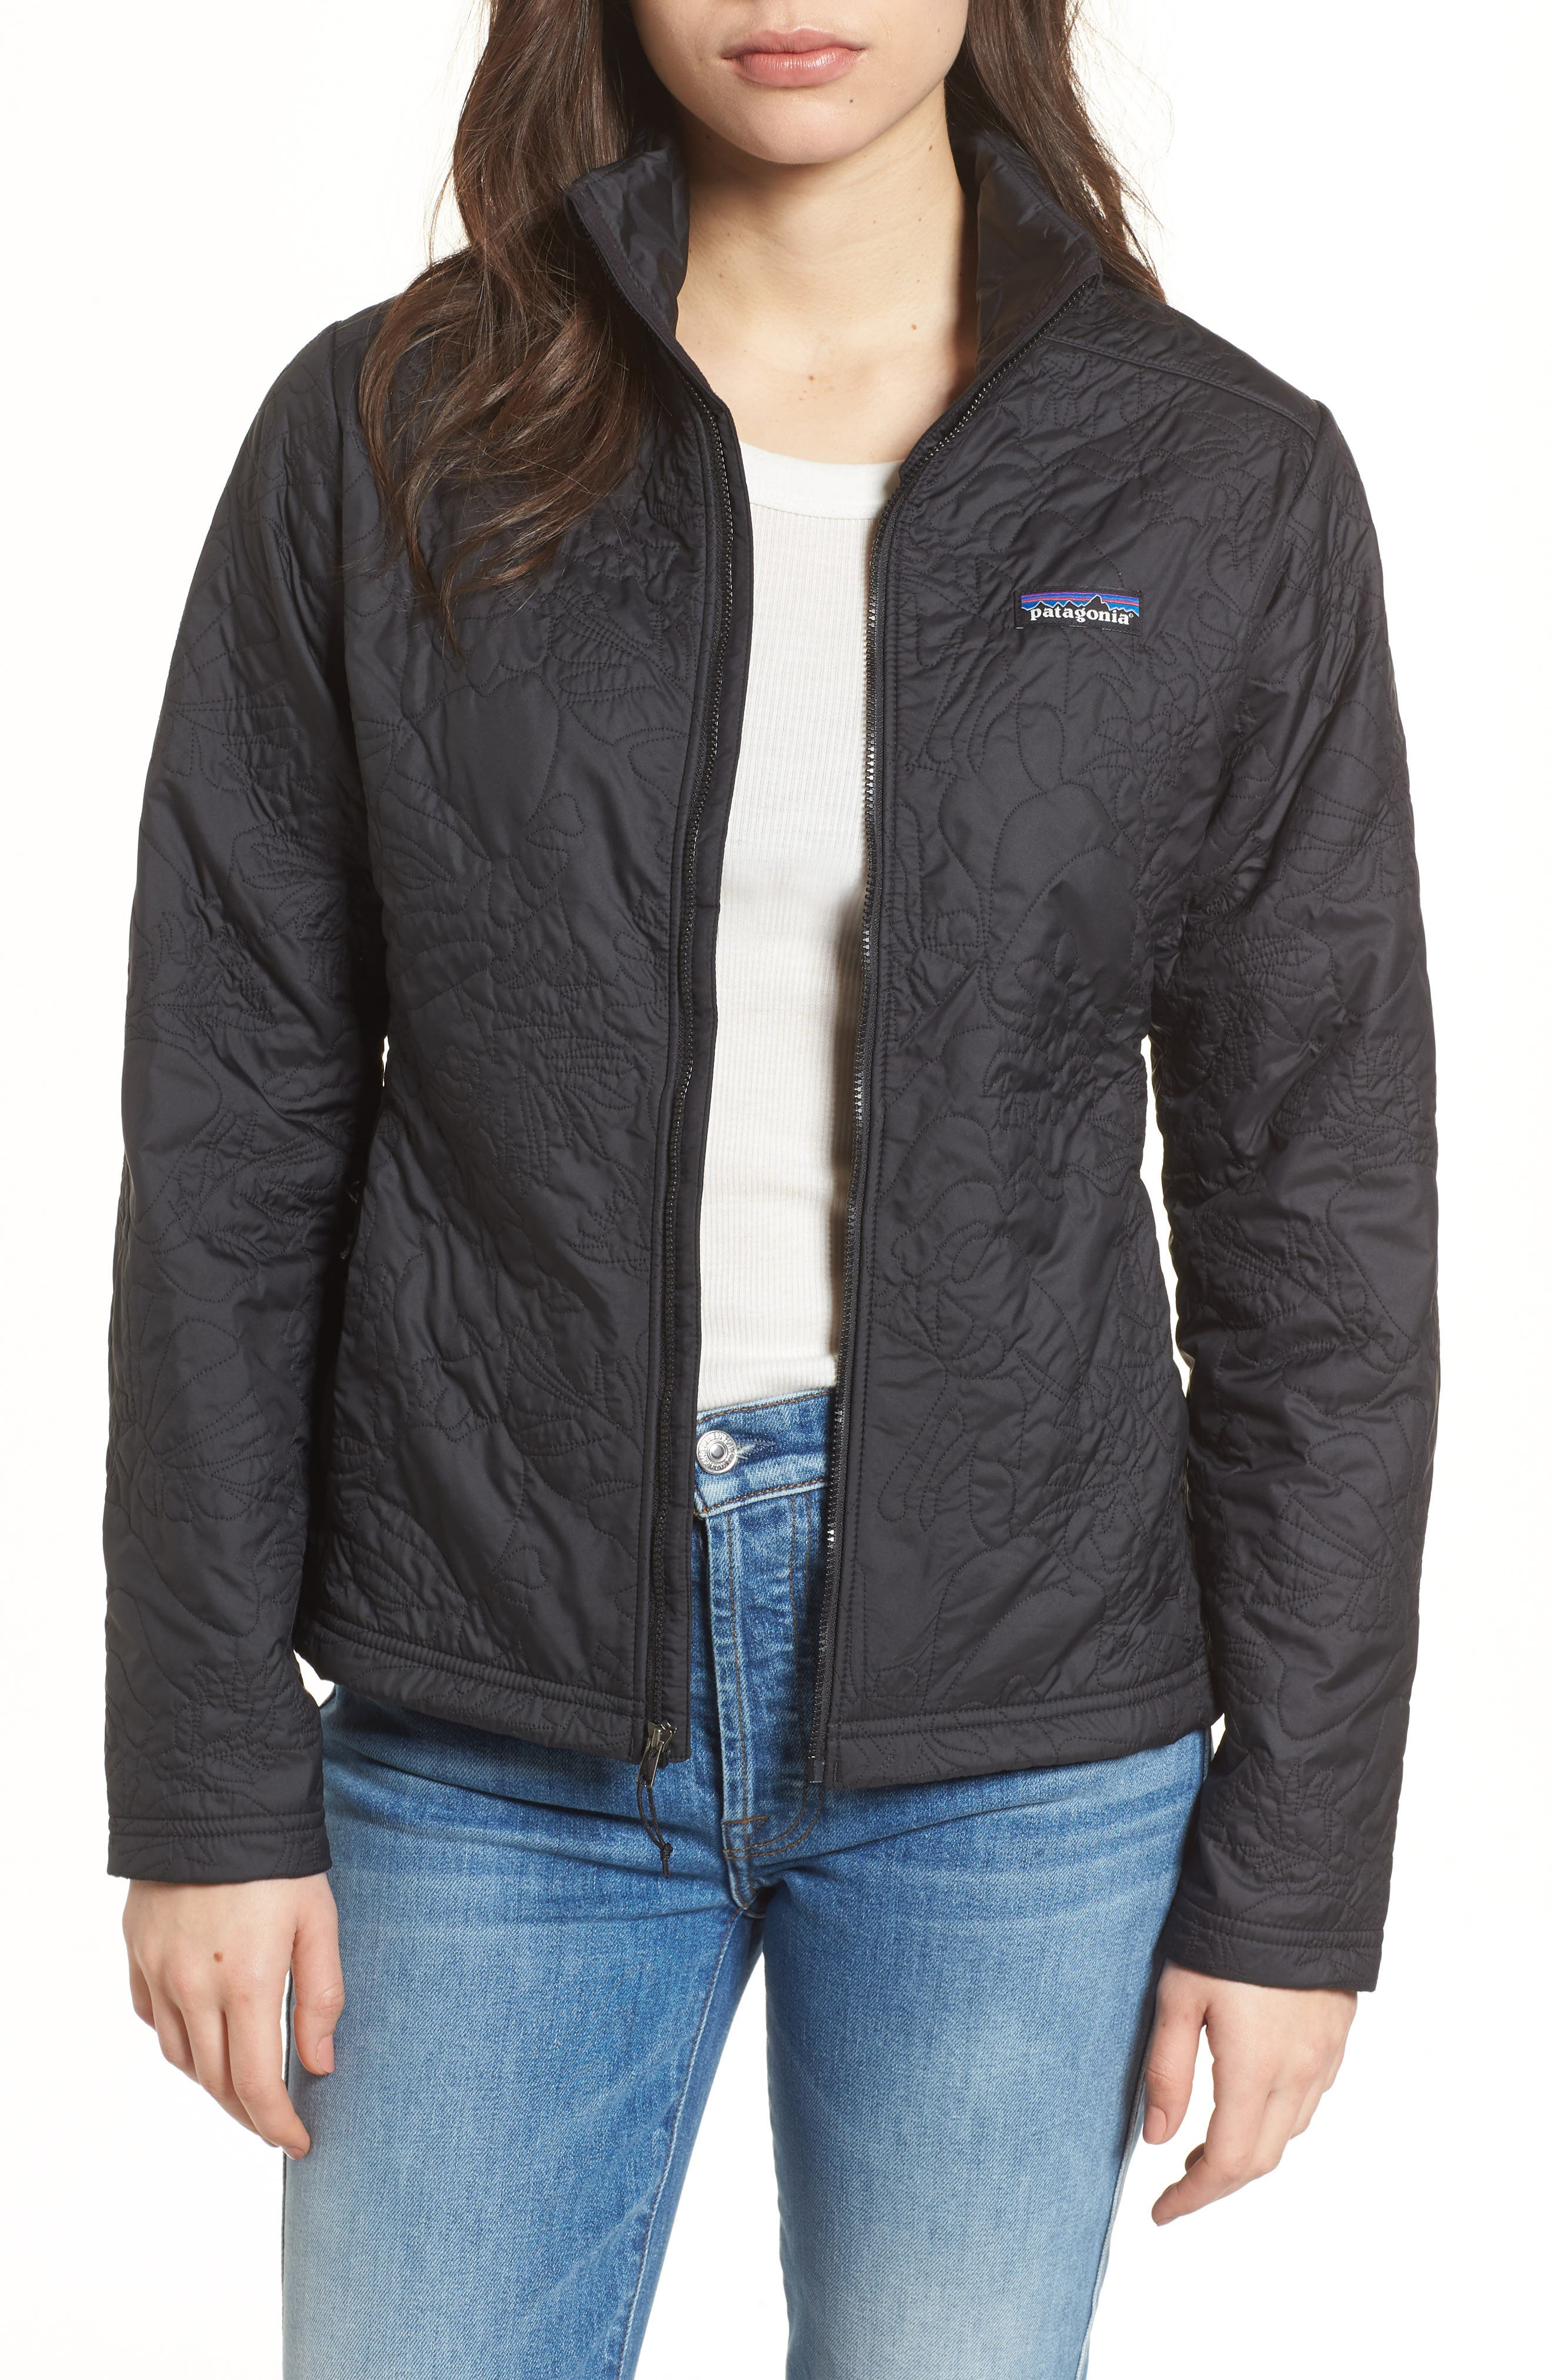 Orchid Cove Jacket,                         Main,                         color, Valley Quilt Black